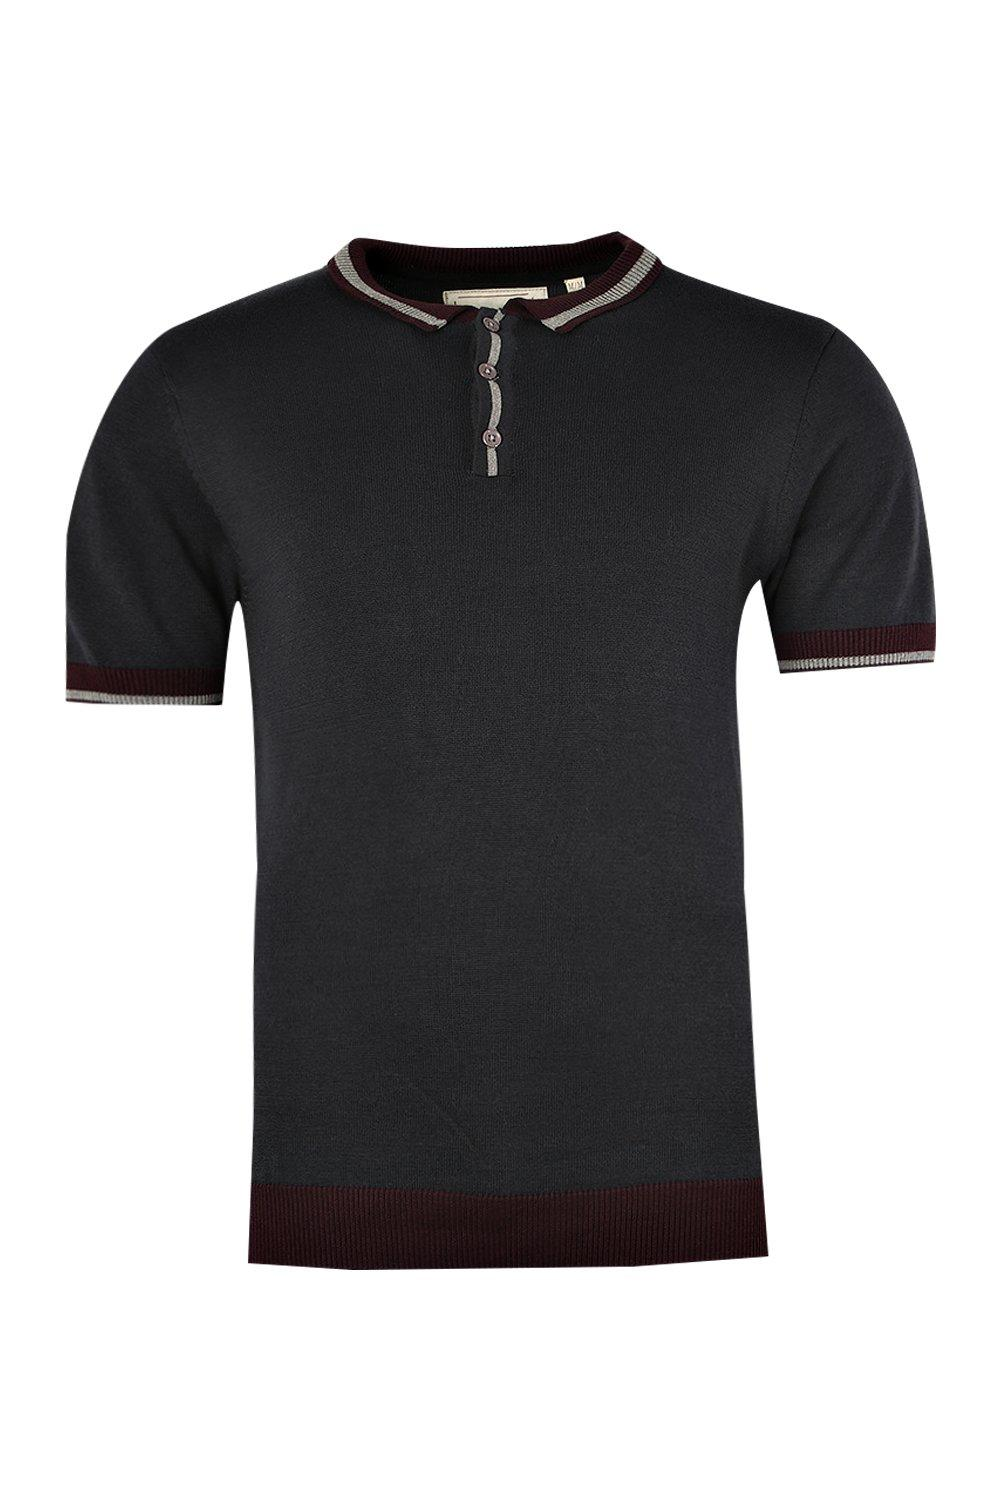 boohooMAN navy Short Sleeve Knitted Polo with Tipping